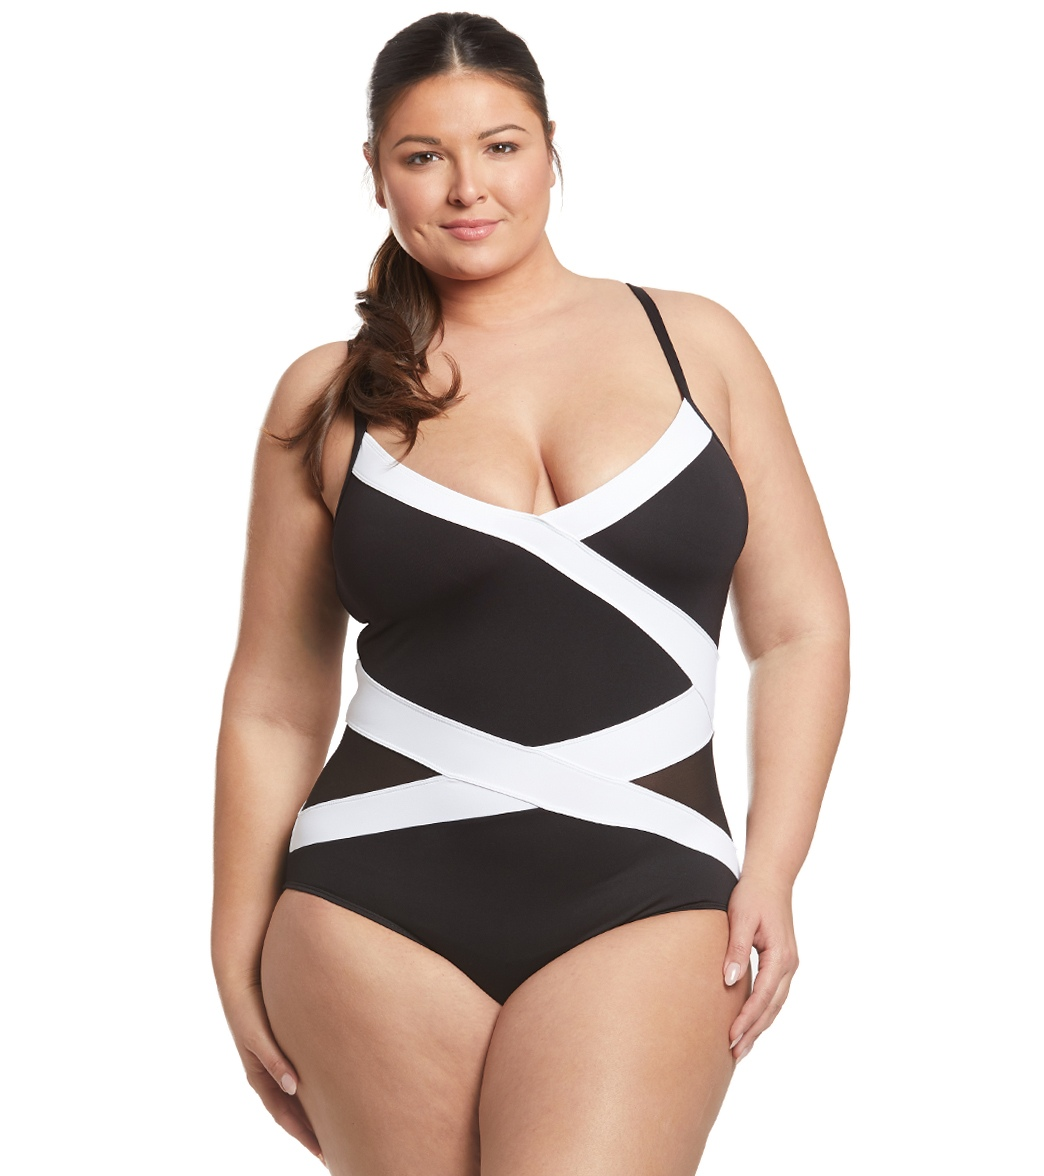 e816fc72b34 Anne Cole Plus Size Cb Mesh One Piece Swimsuit at SwimOutlet.com - Free  Shipping